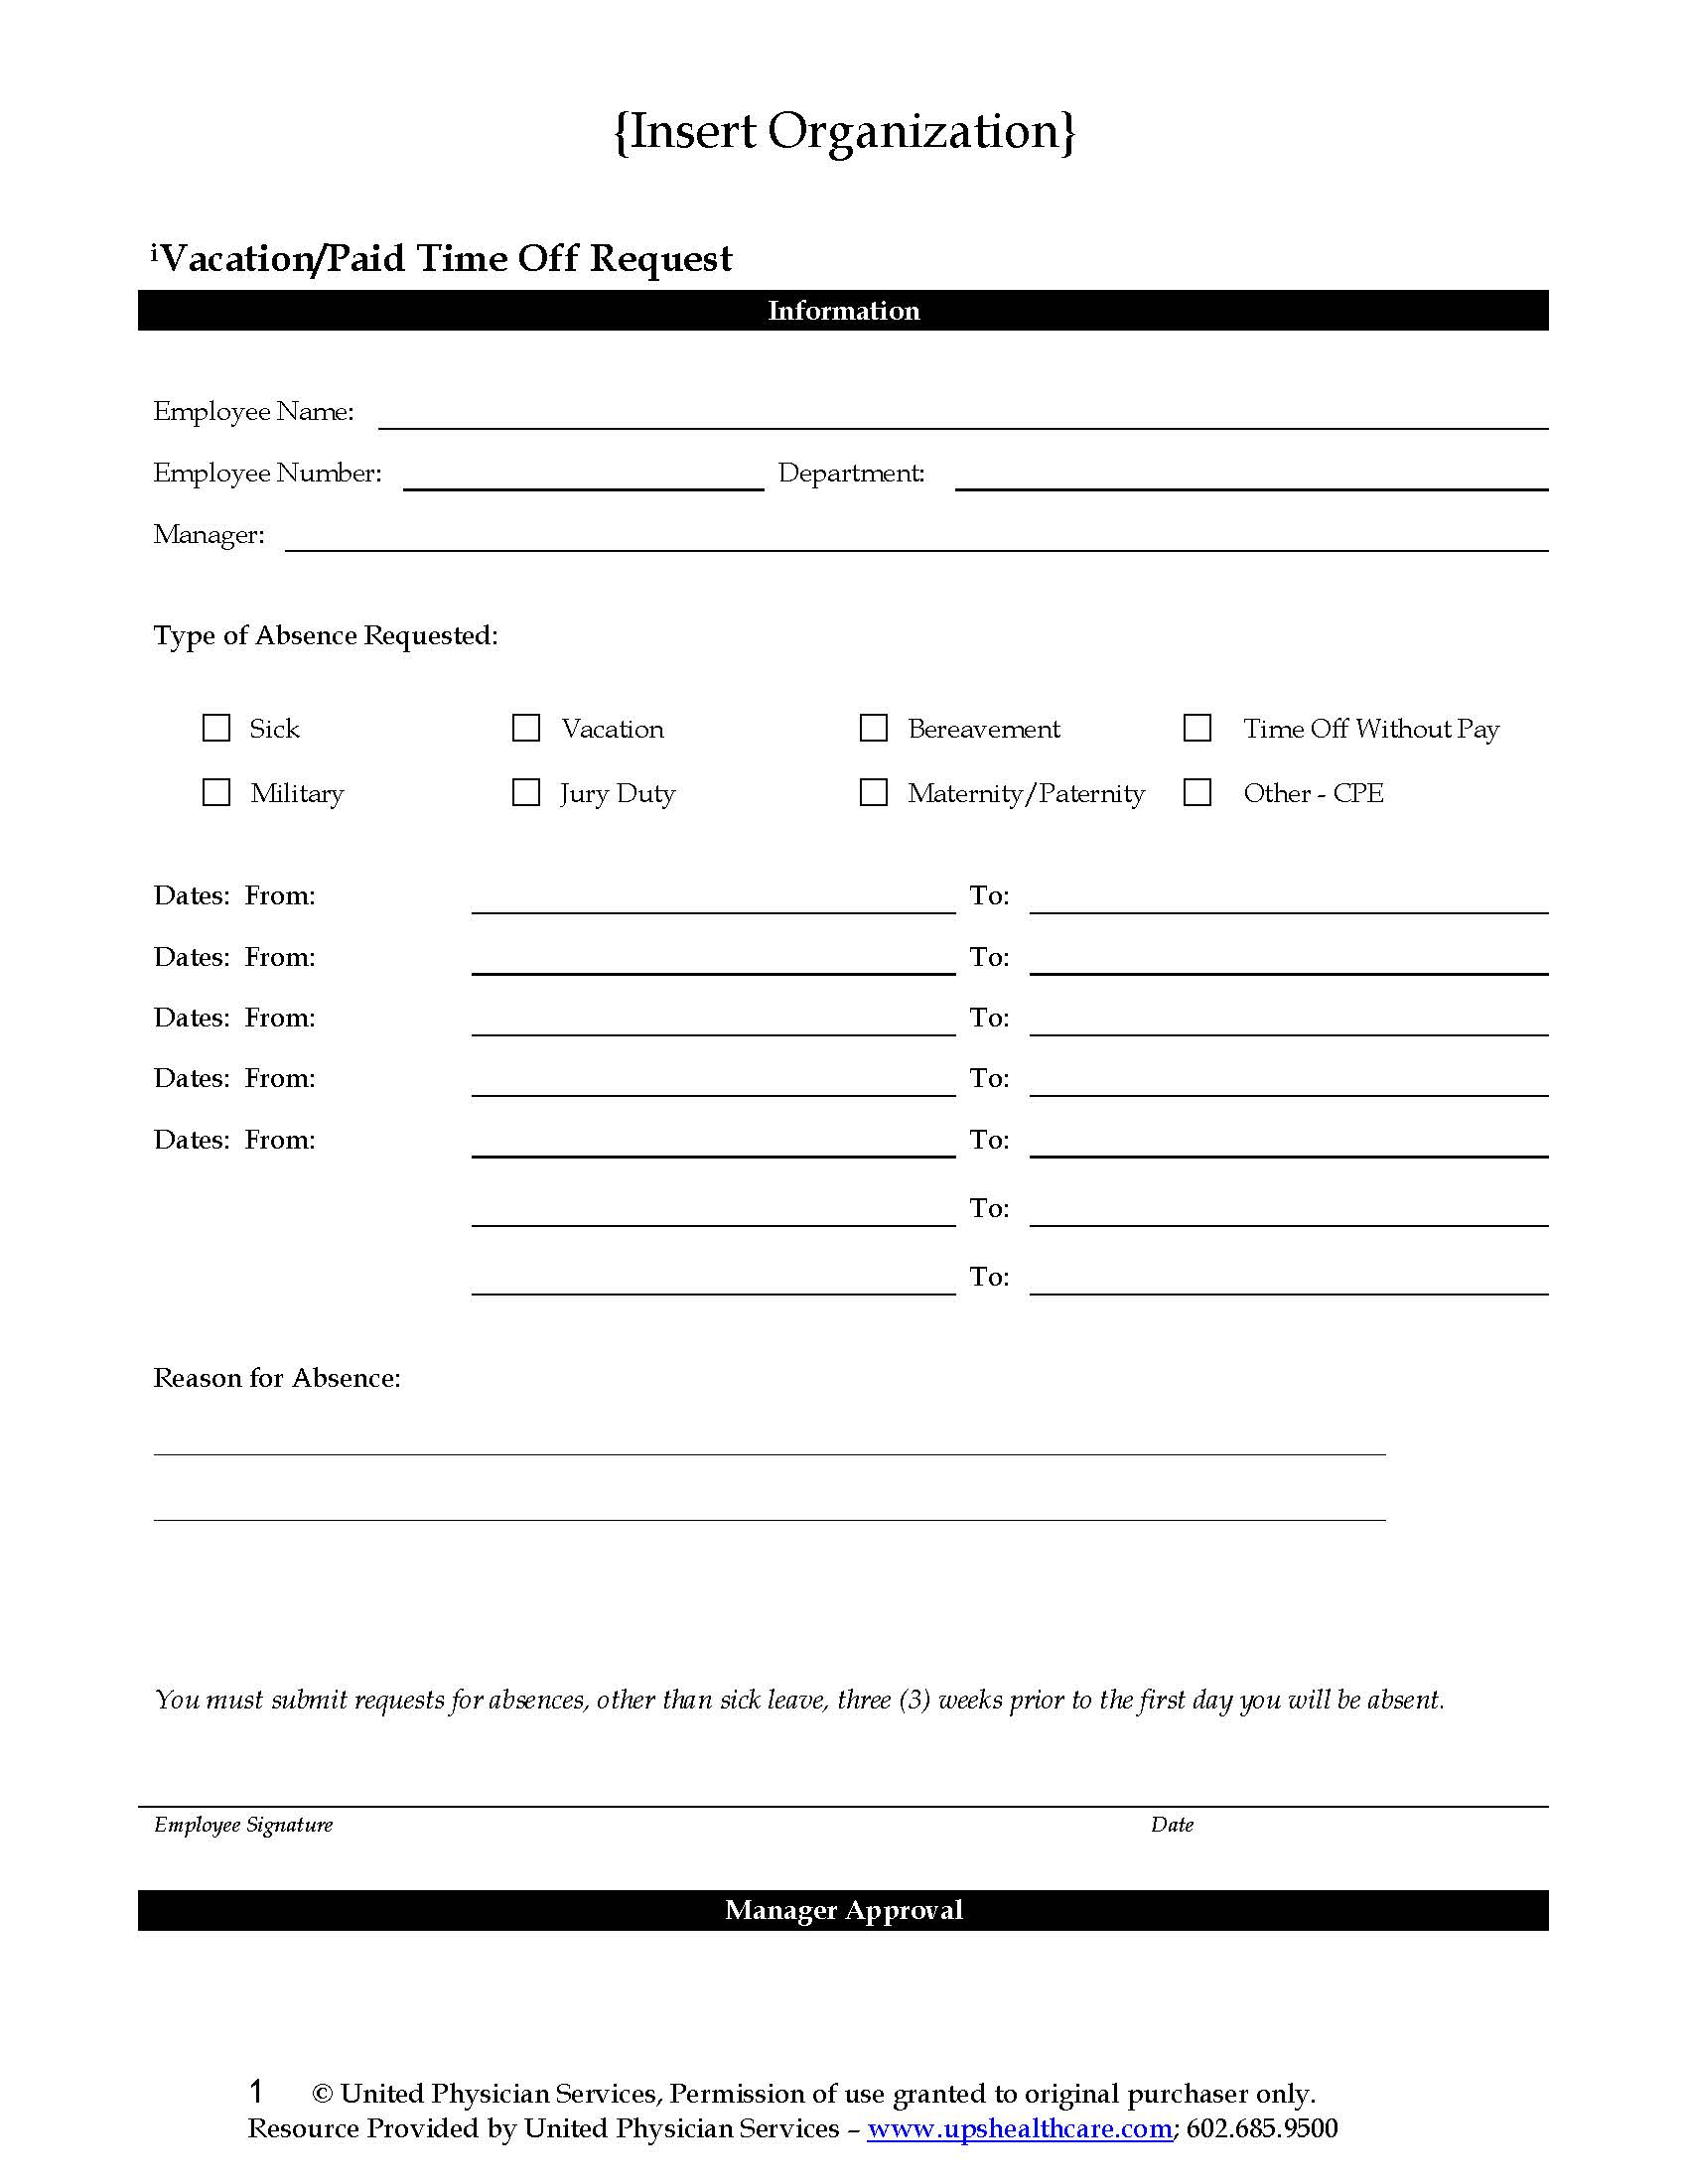 vacationpto request form united physician services